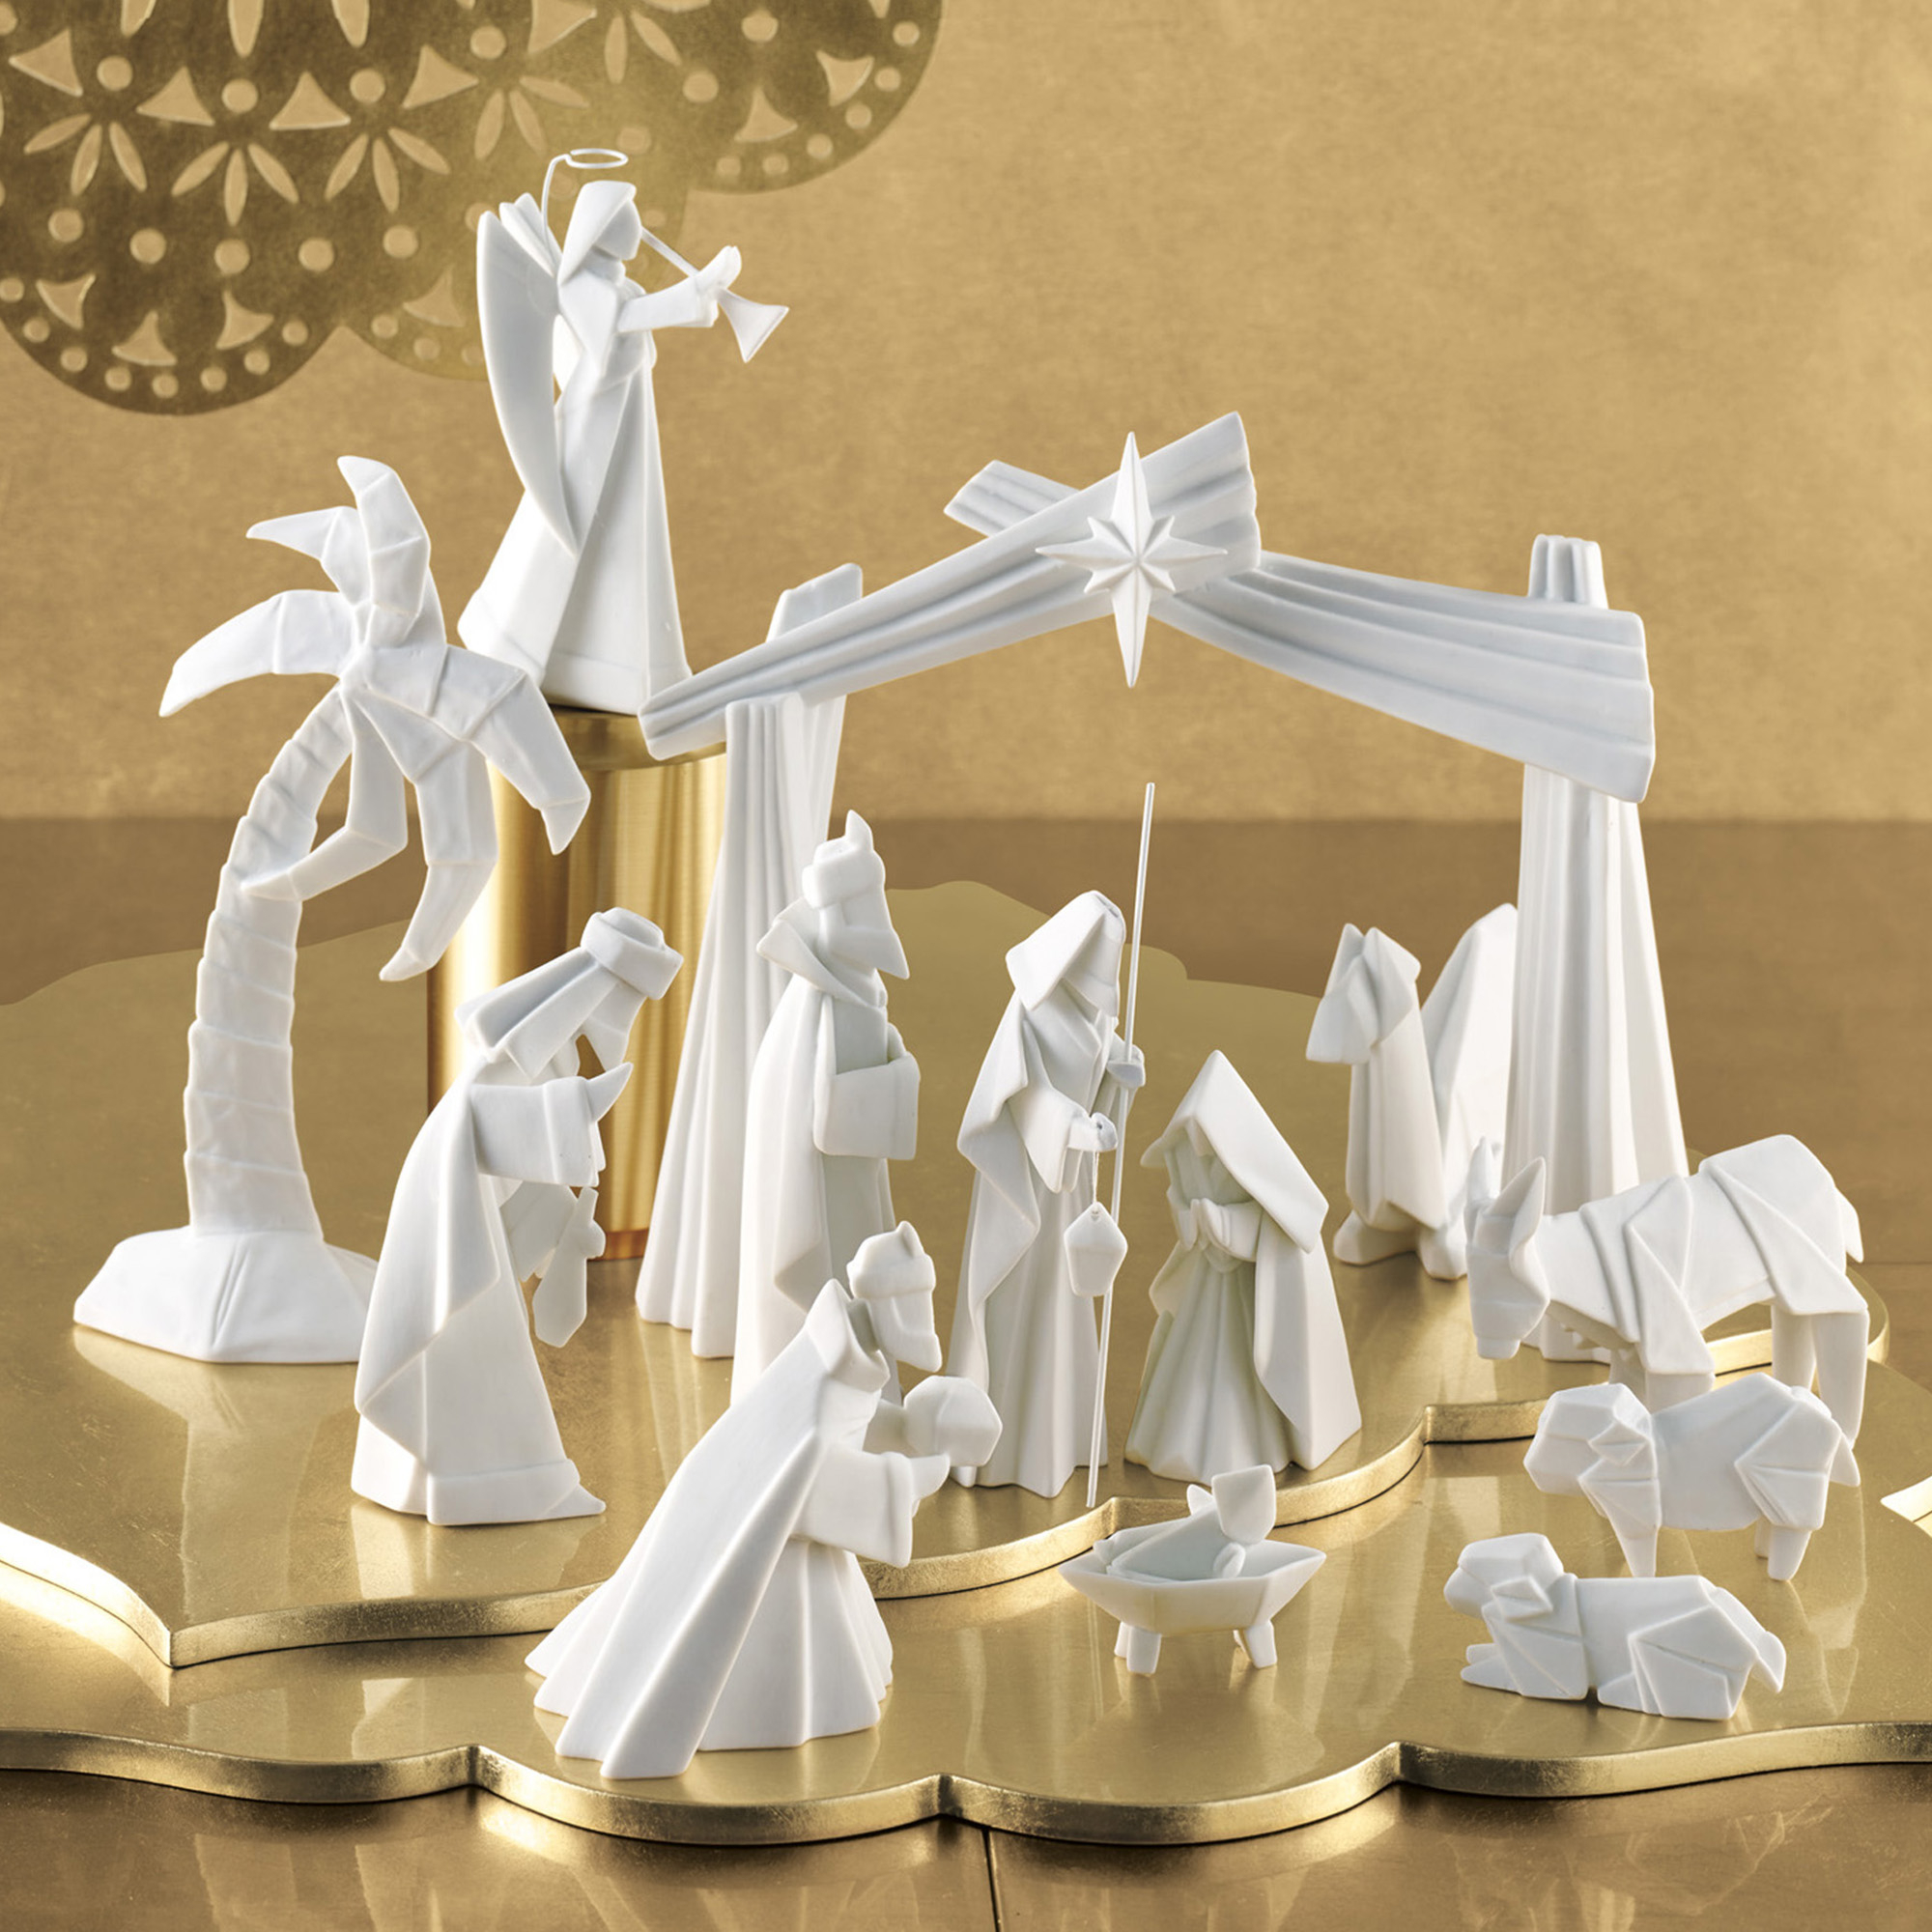 Porcelain Origami Nativity Set